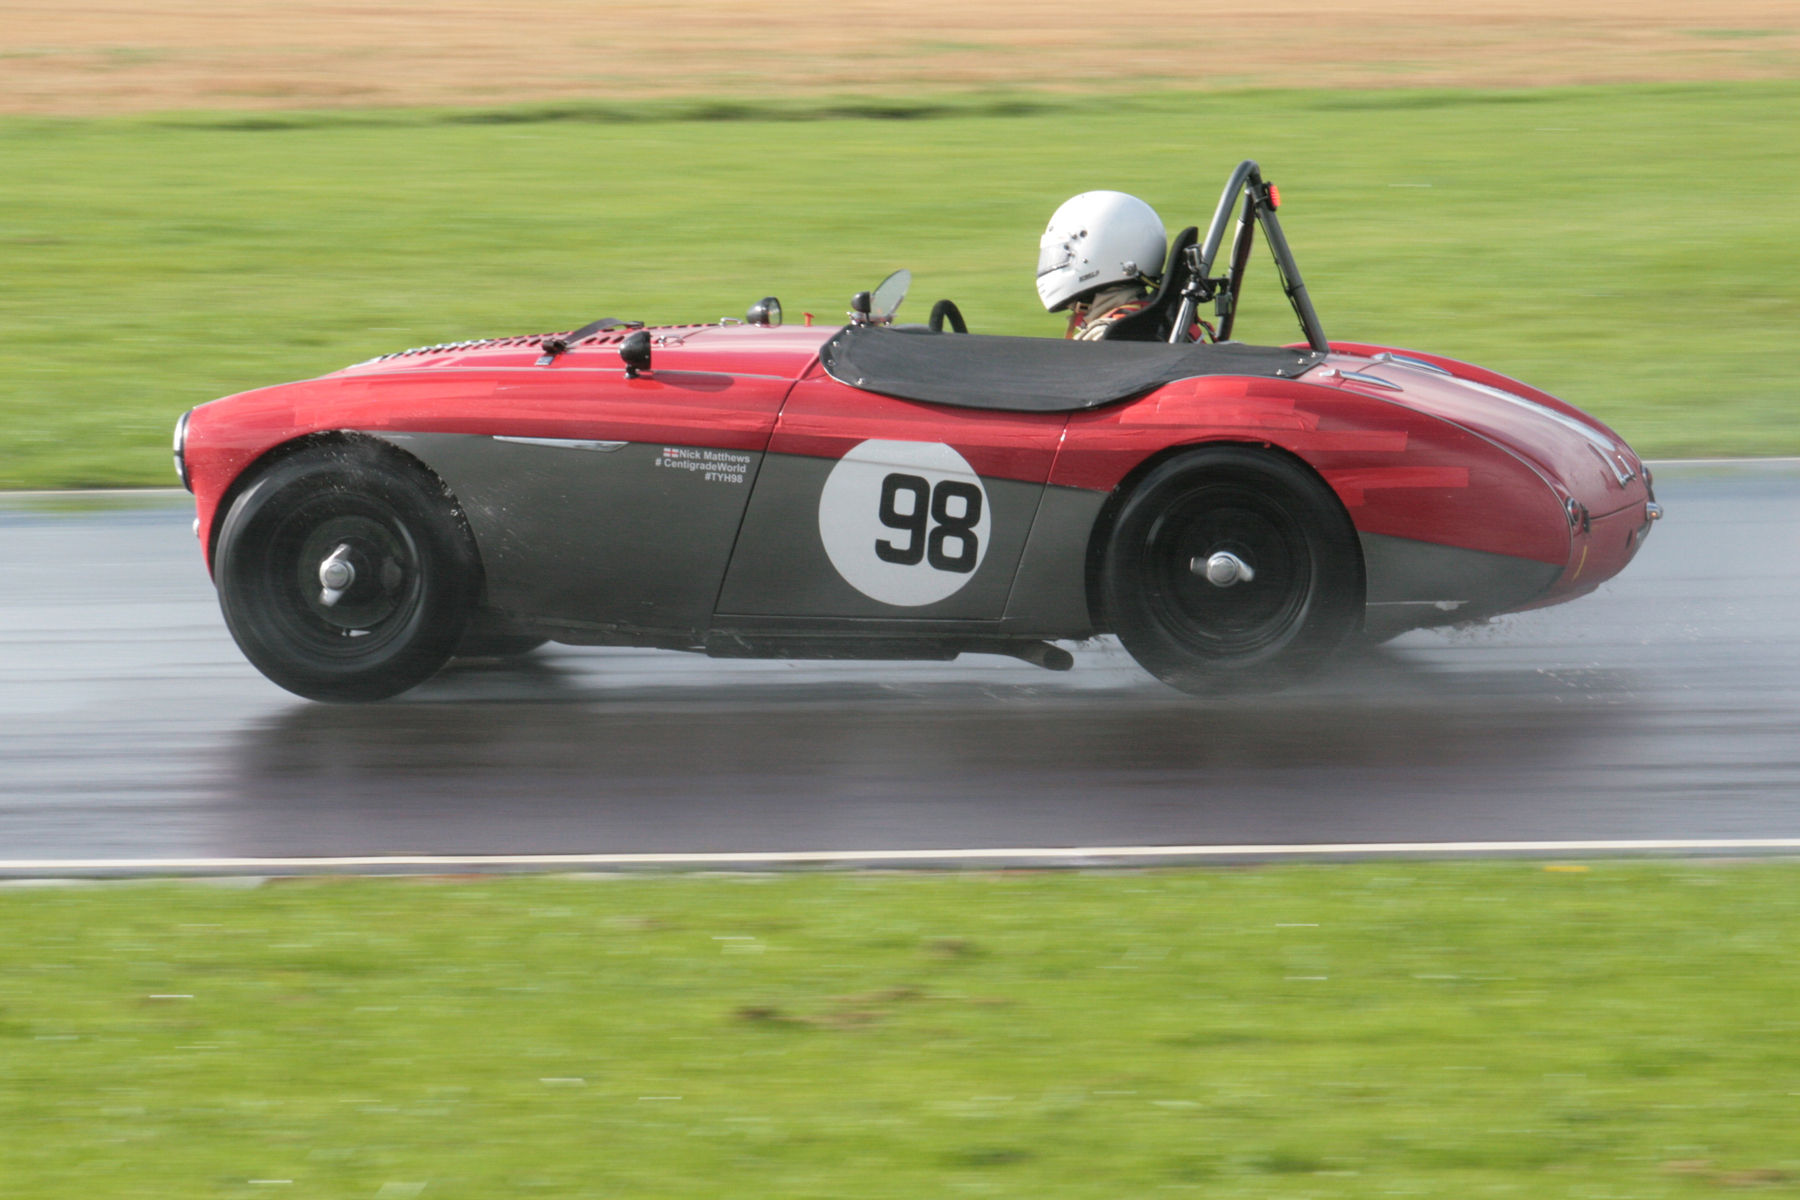 Nick Matthews finished 2nd overall despite his best attempts to avoid the race when during qualifying for the Healey race he overcooked it going into Camp and slid the car along the barriers - fortunately only cosmetic damage ensued - note the strips of red tape along the side.  Photo - John Turner